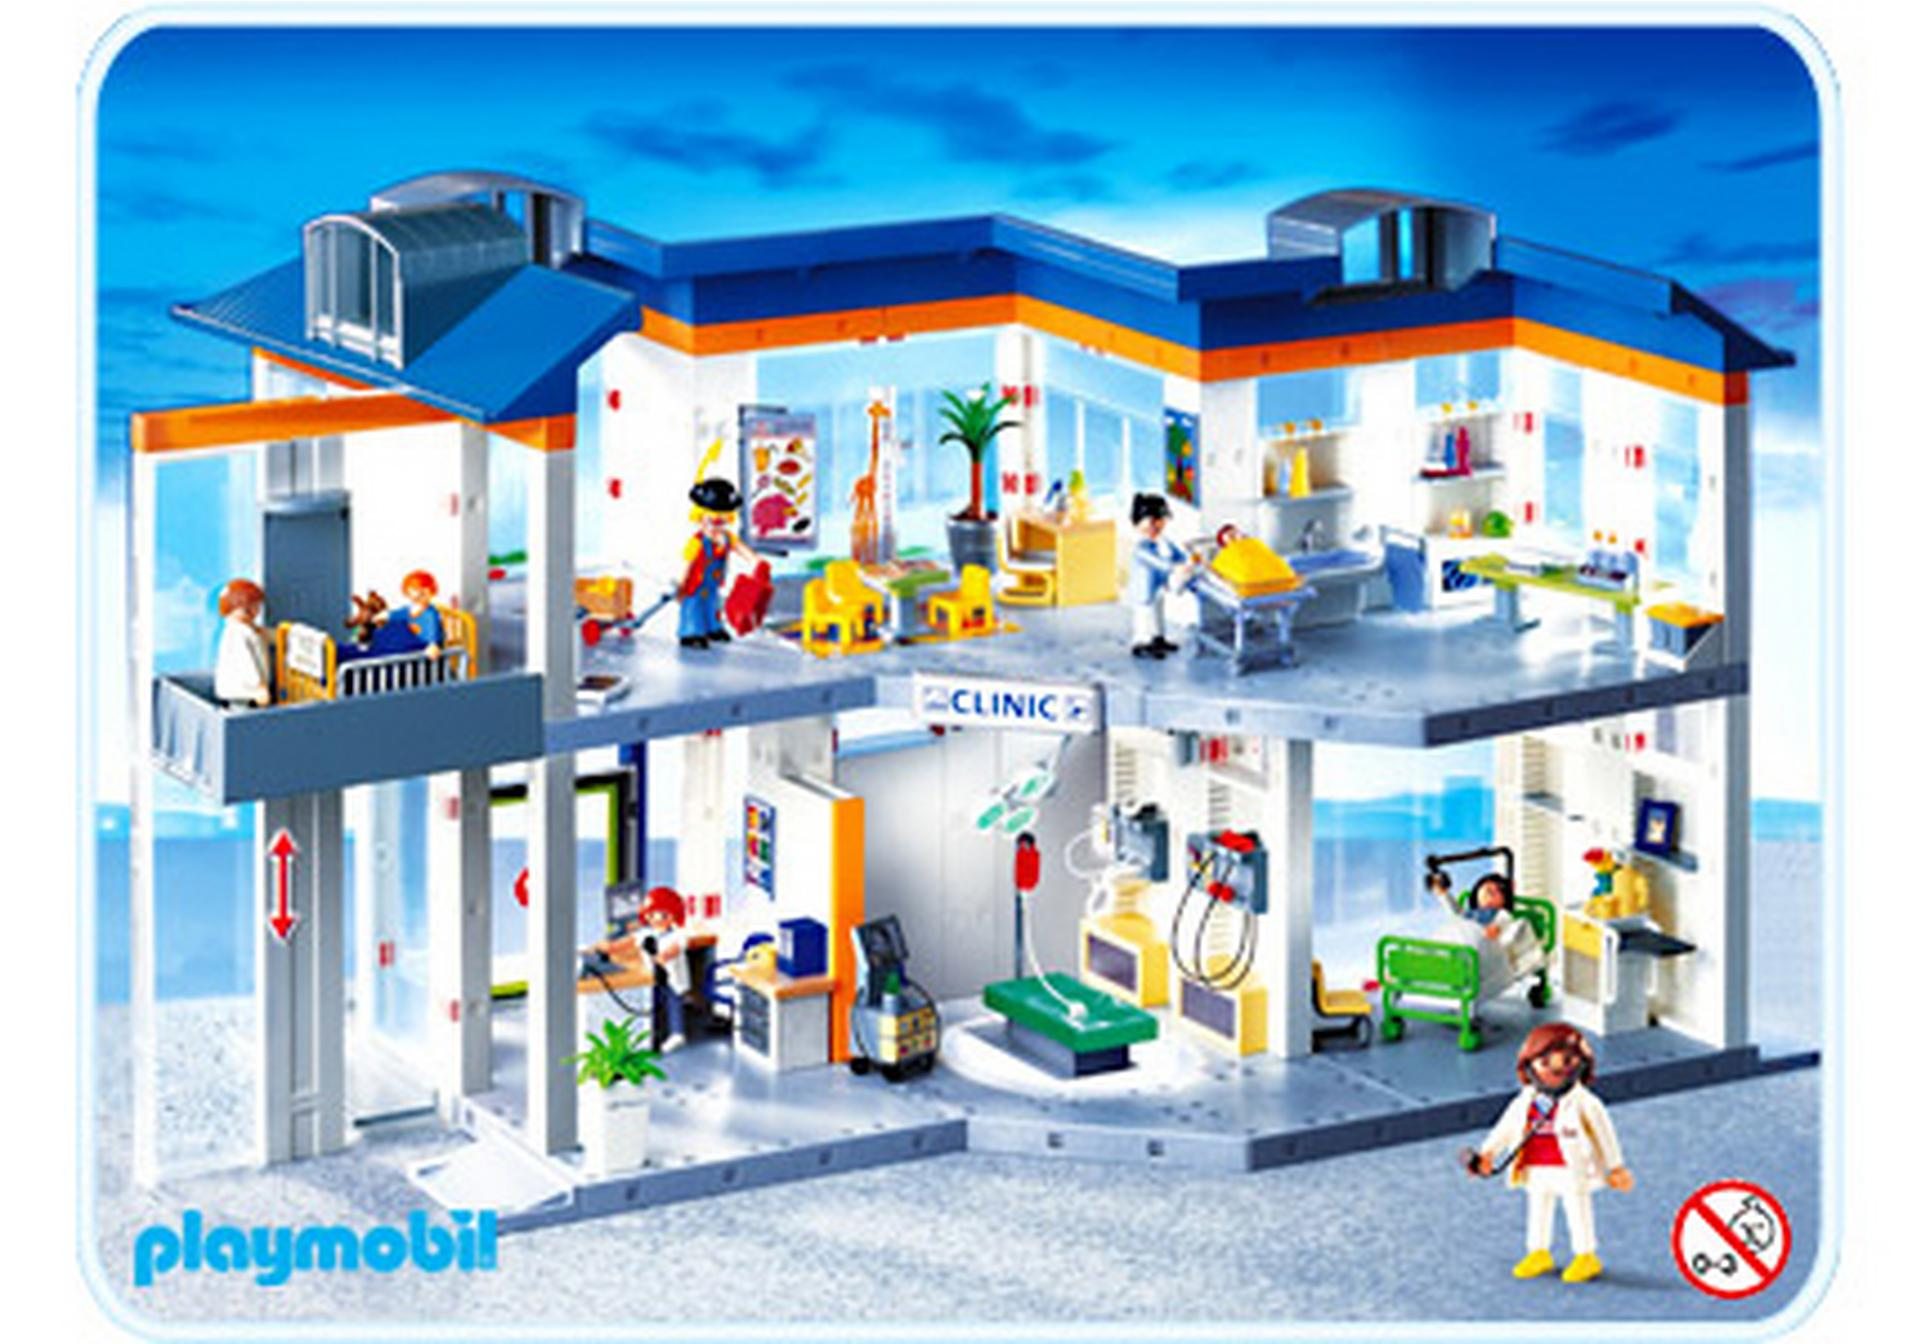 Awesome maison moderne playmobil pictures for Cuisine playmobil